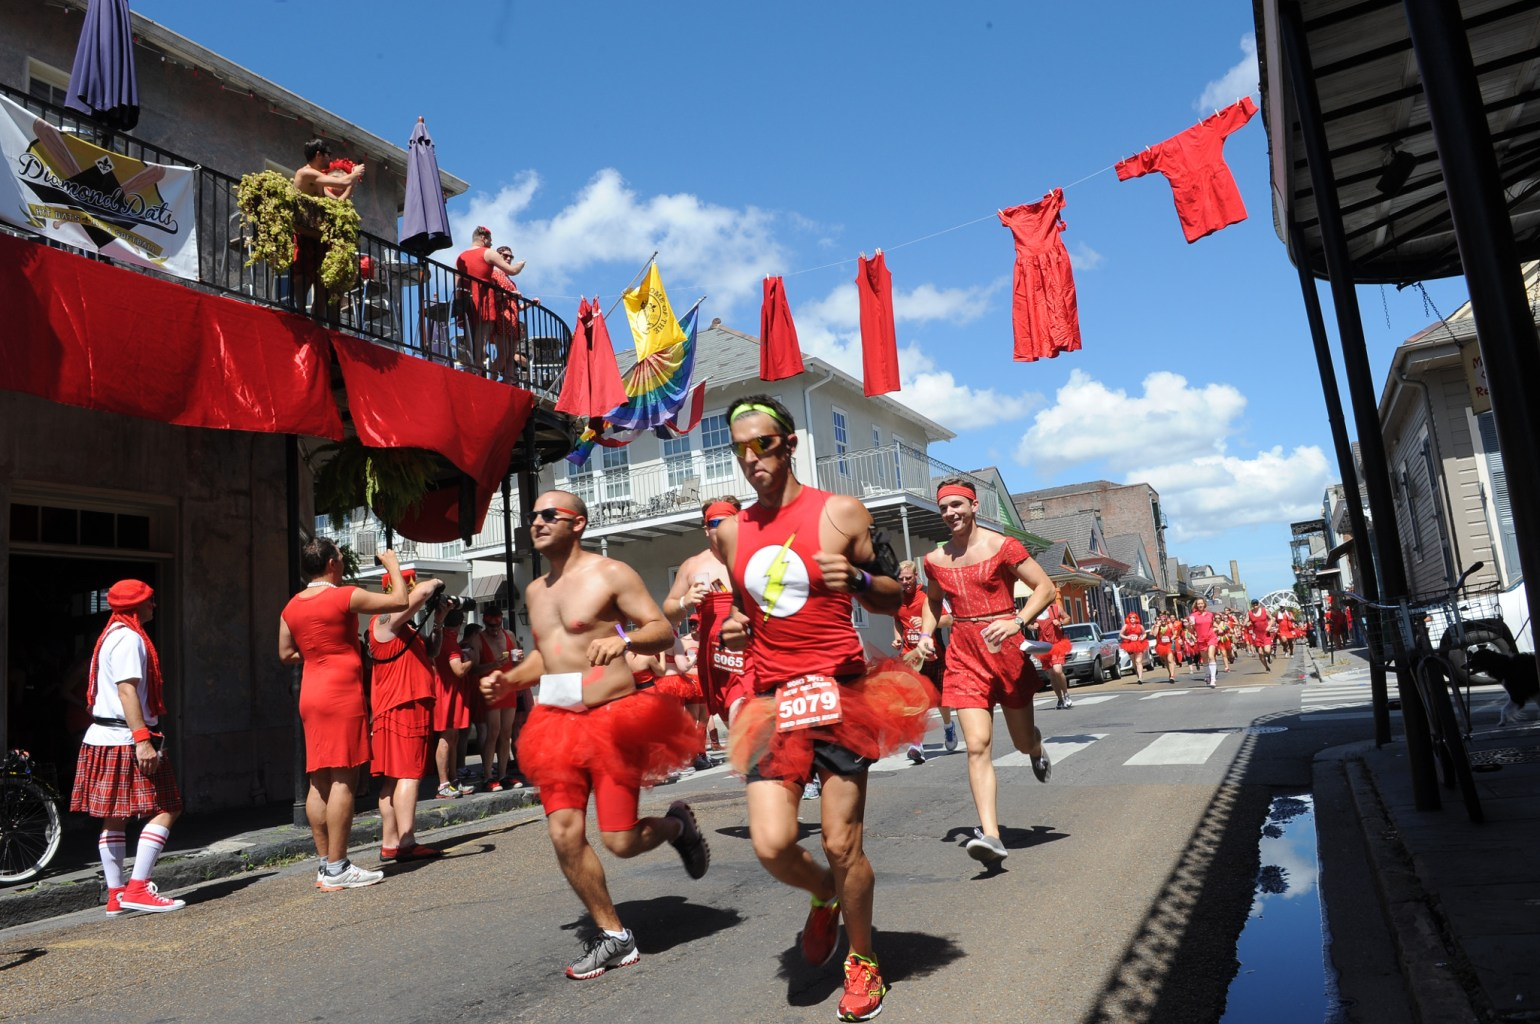 Grab your sneakers and your favorite scarlet colored dress or tutu and hit the Quarter for a fun run like no other. (Photo Credit: Cheryl Gerber)